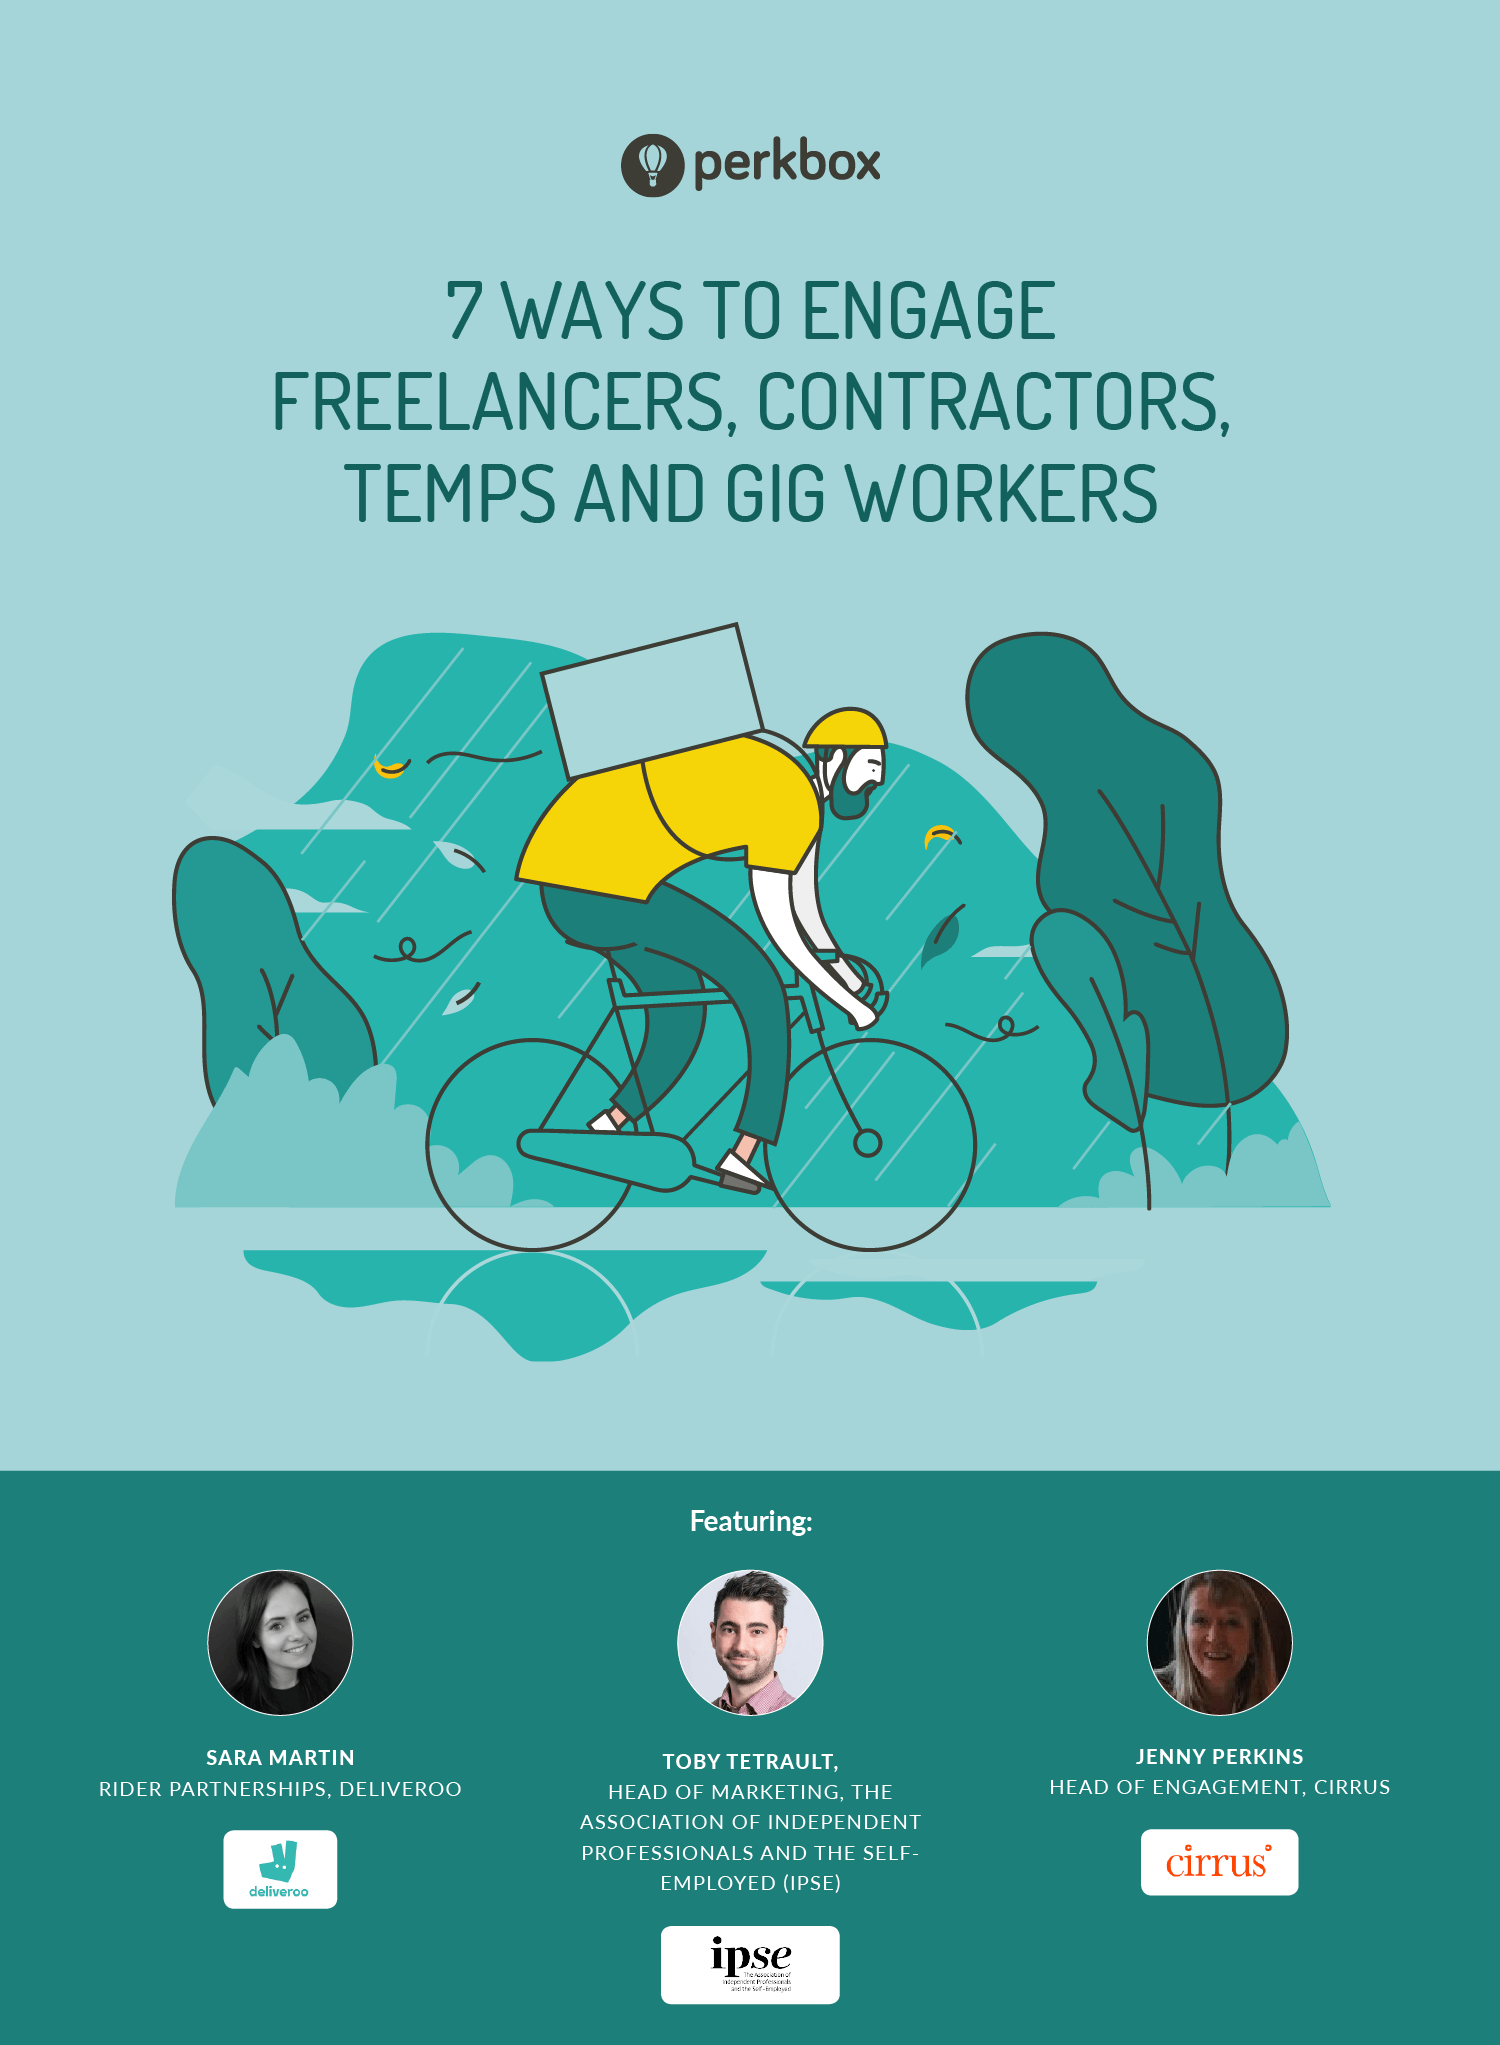 7 Ways to Engage Freelancers, Contractors, Temps and Gig Workers